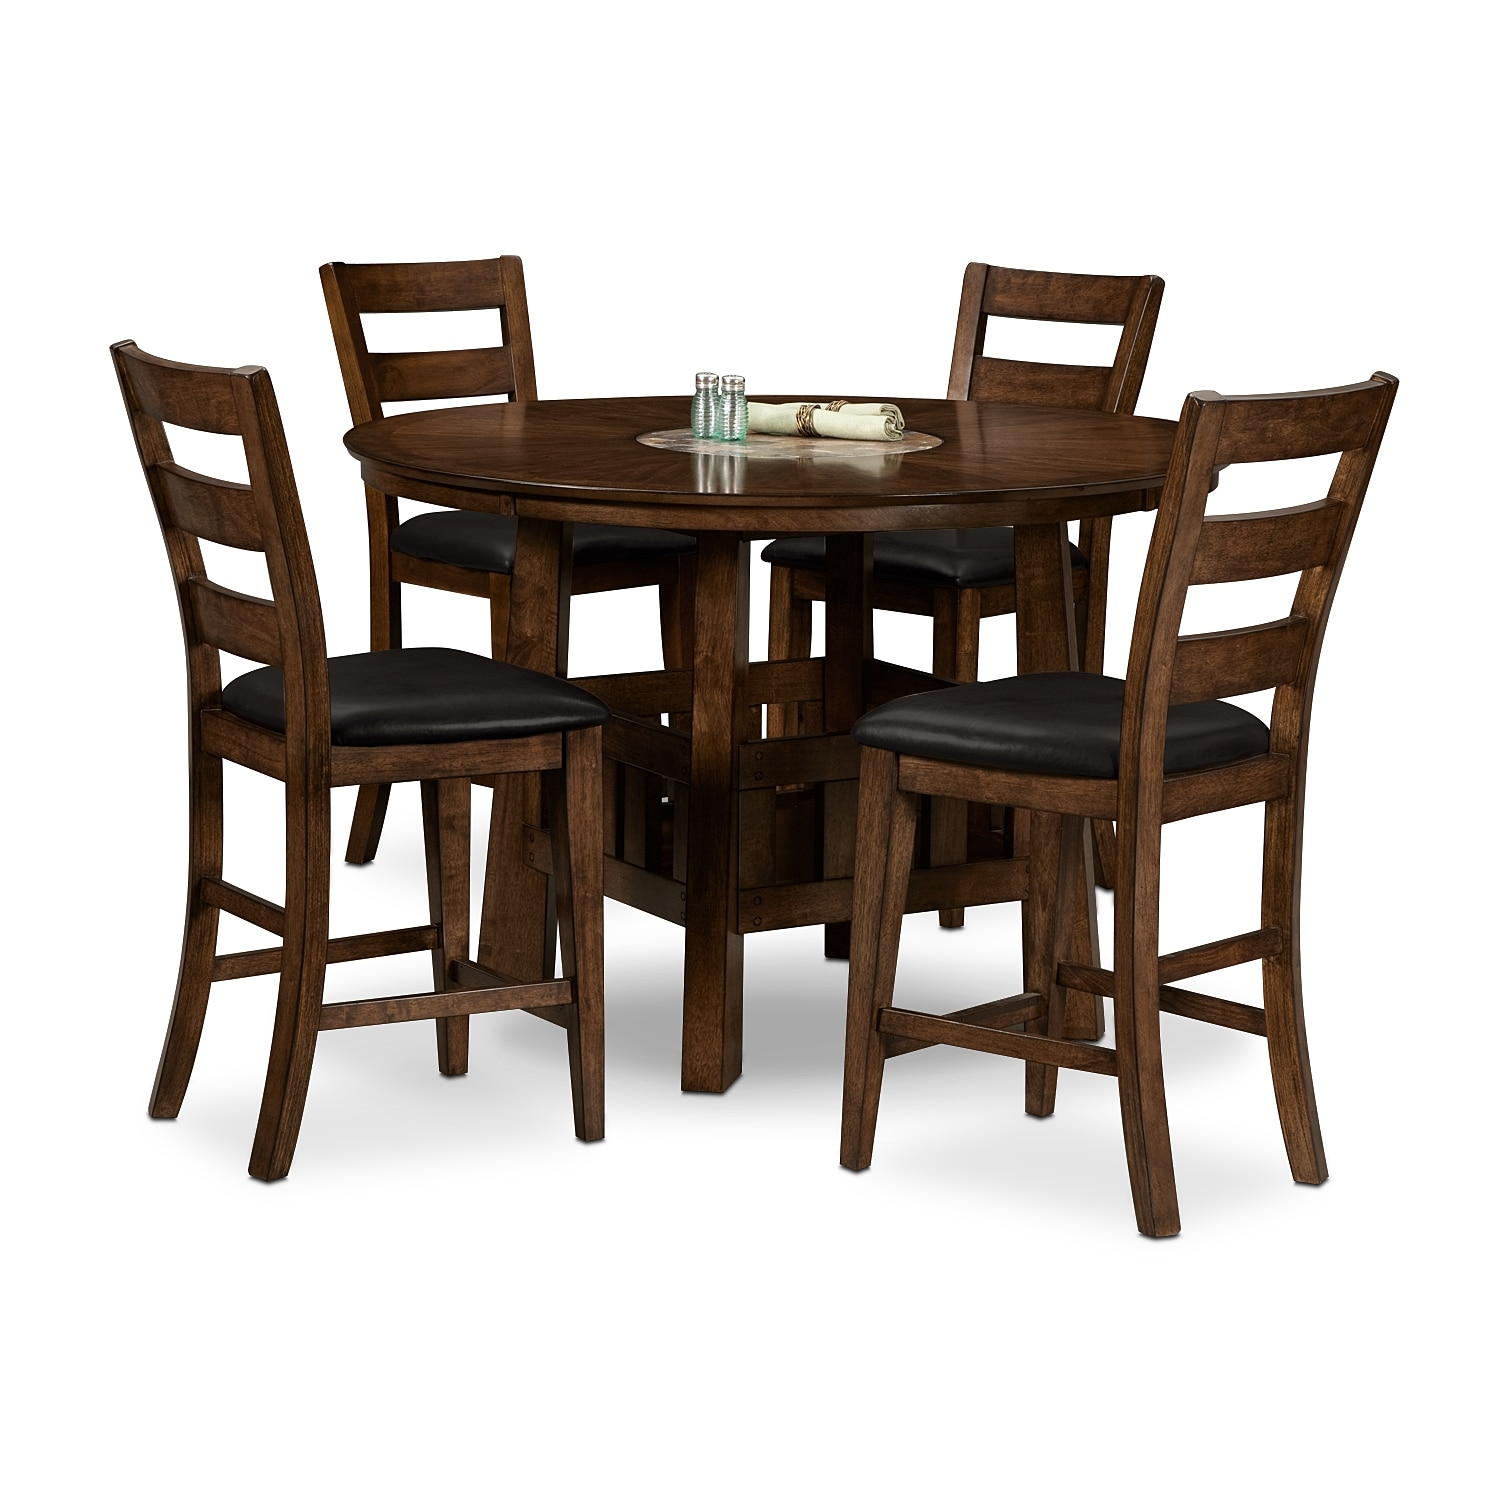 Harbor Pointe 5 Pc. Counter-Height Dinette